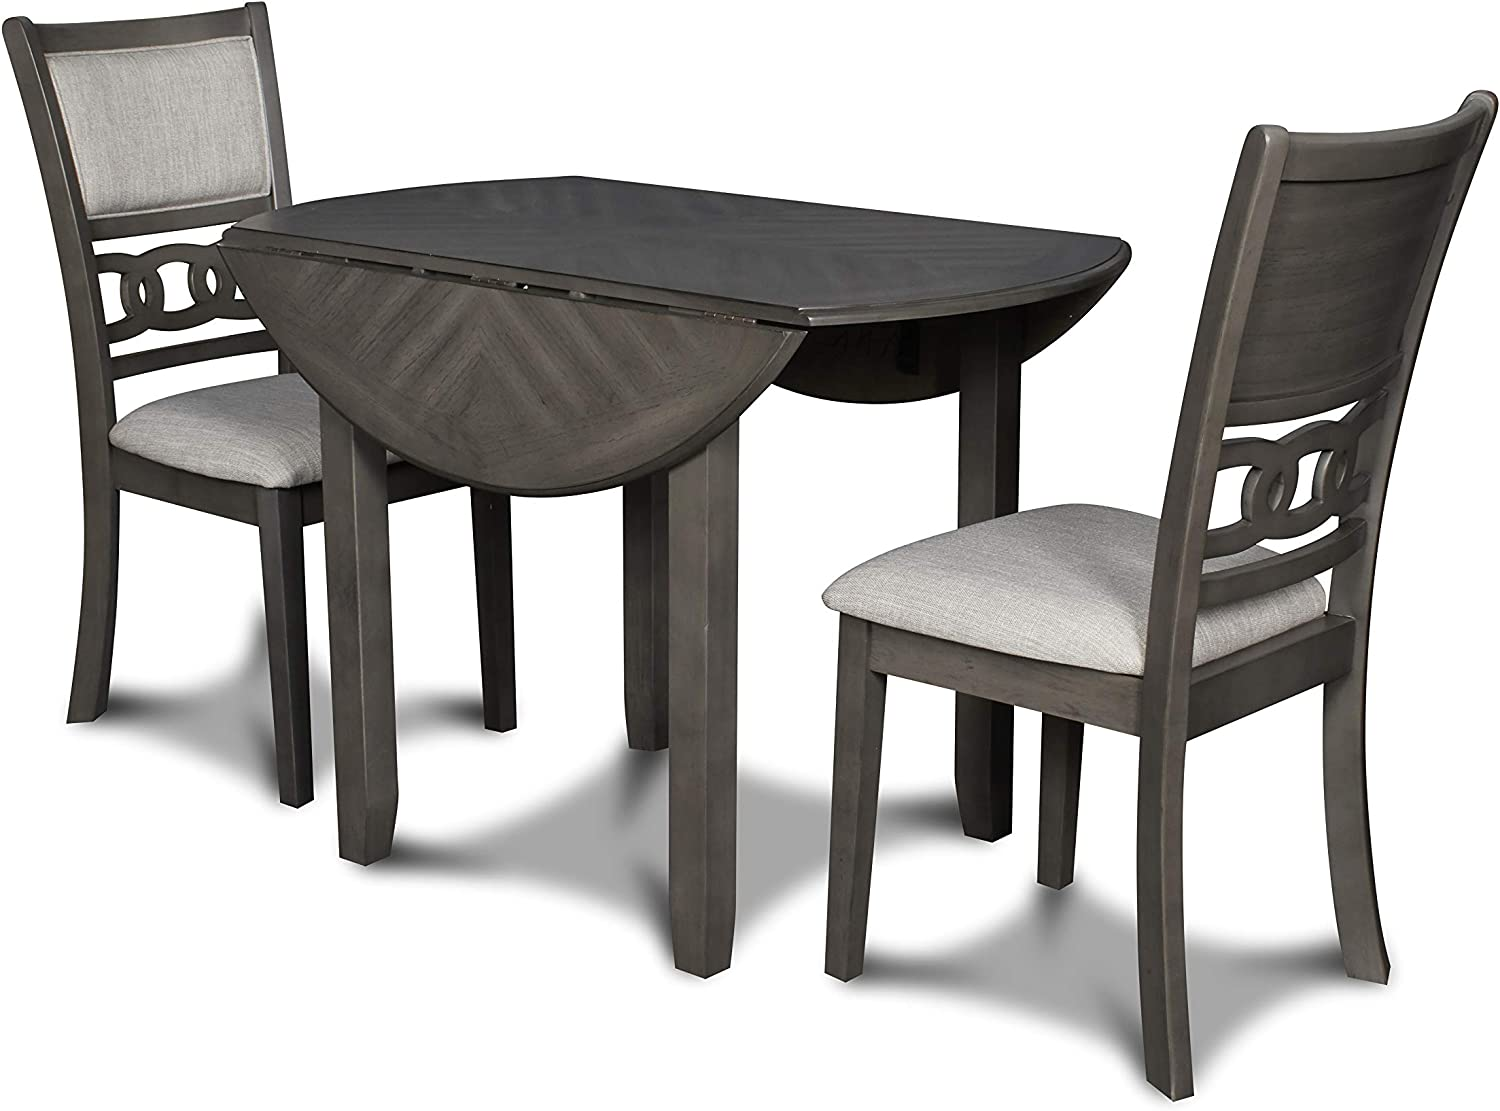 New Classic Furniture Gia Drop Leaf Dining Table with Two Chairs, 42-Inch, Gray